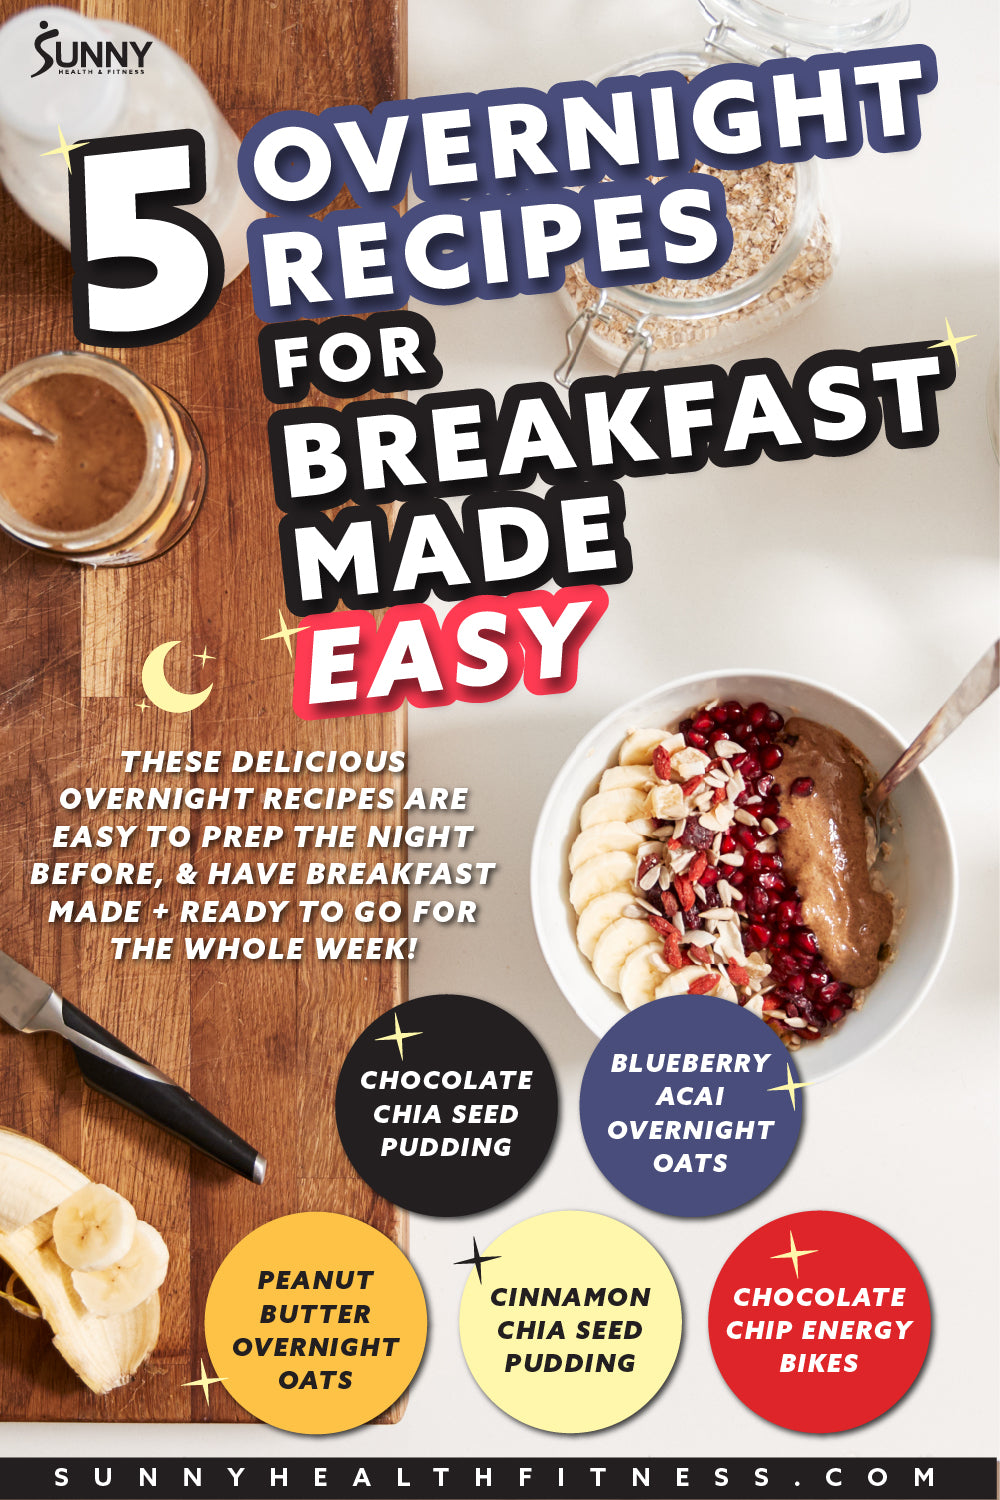 What Are 5 Easy Overnight Recipes for Breakfast